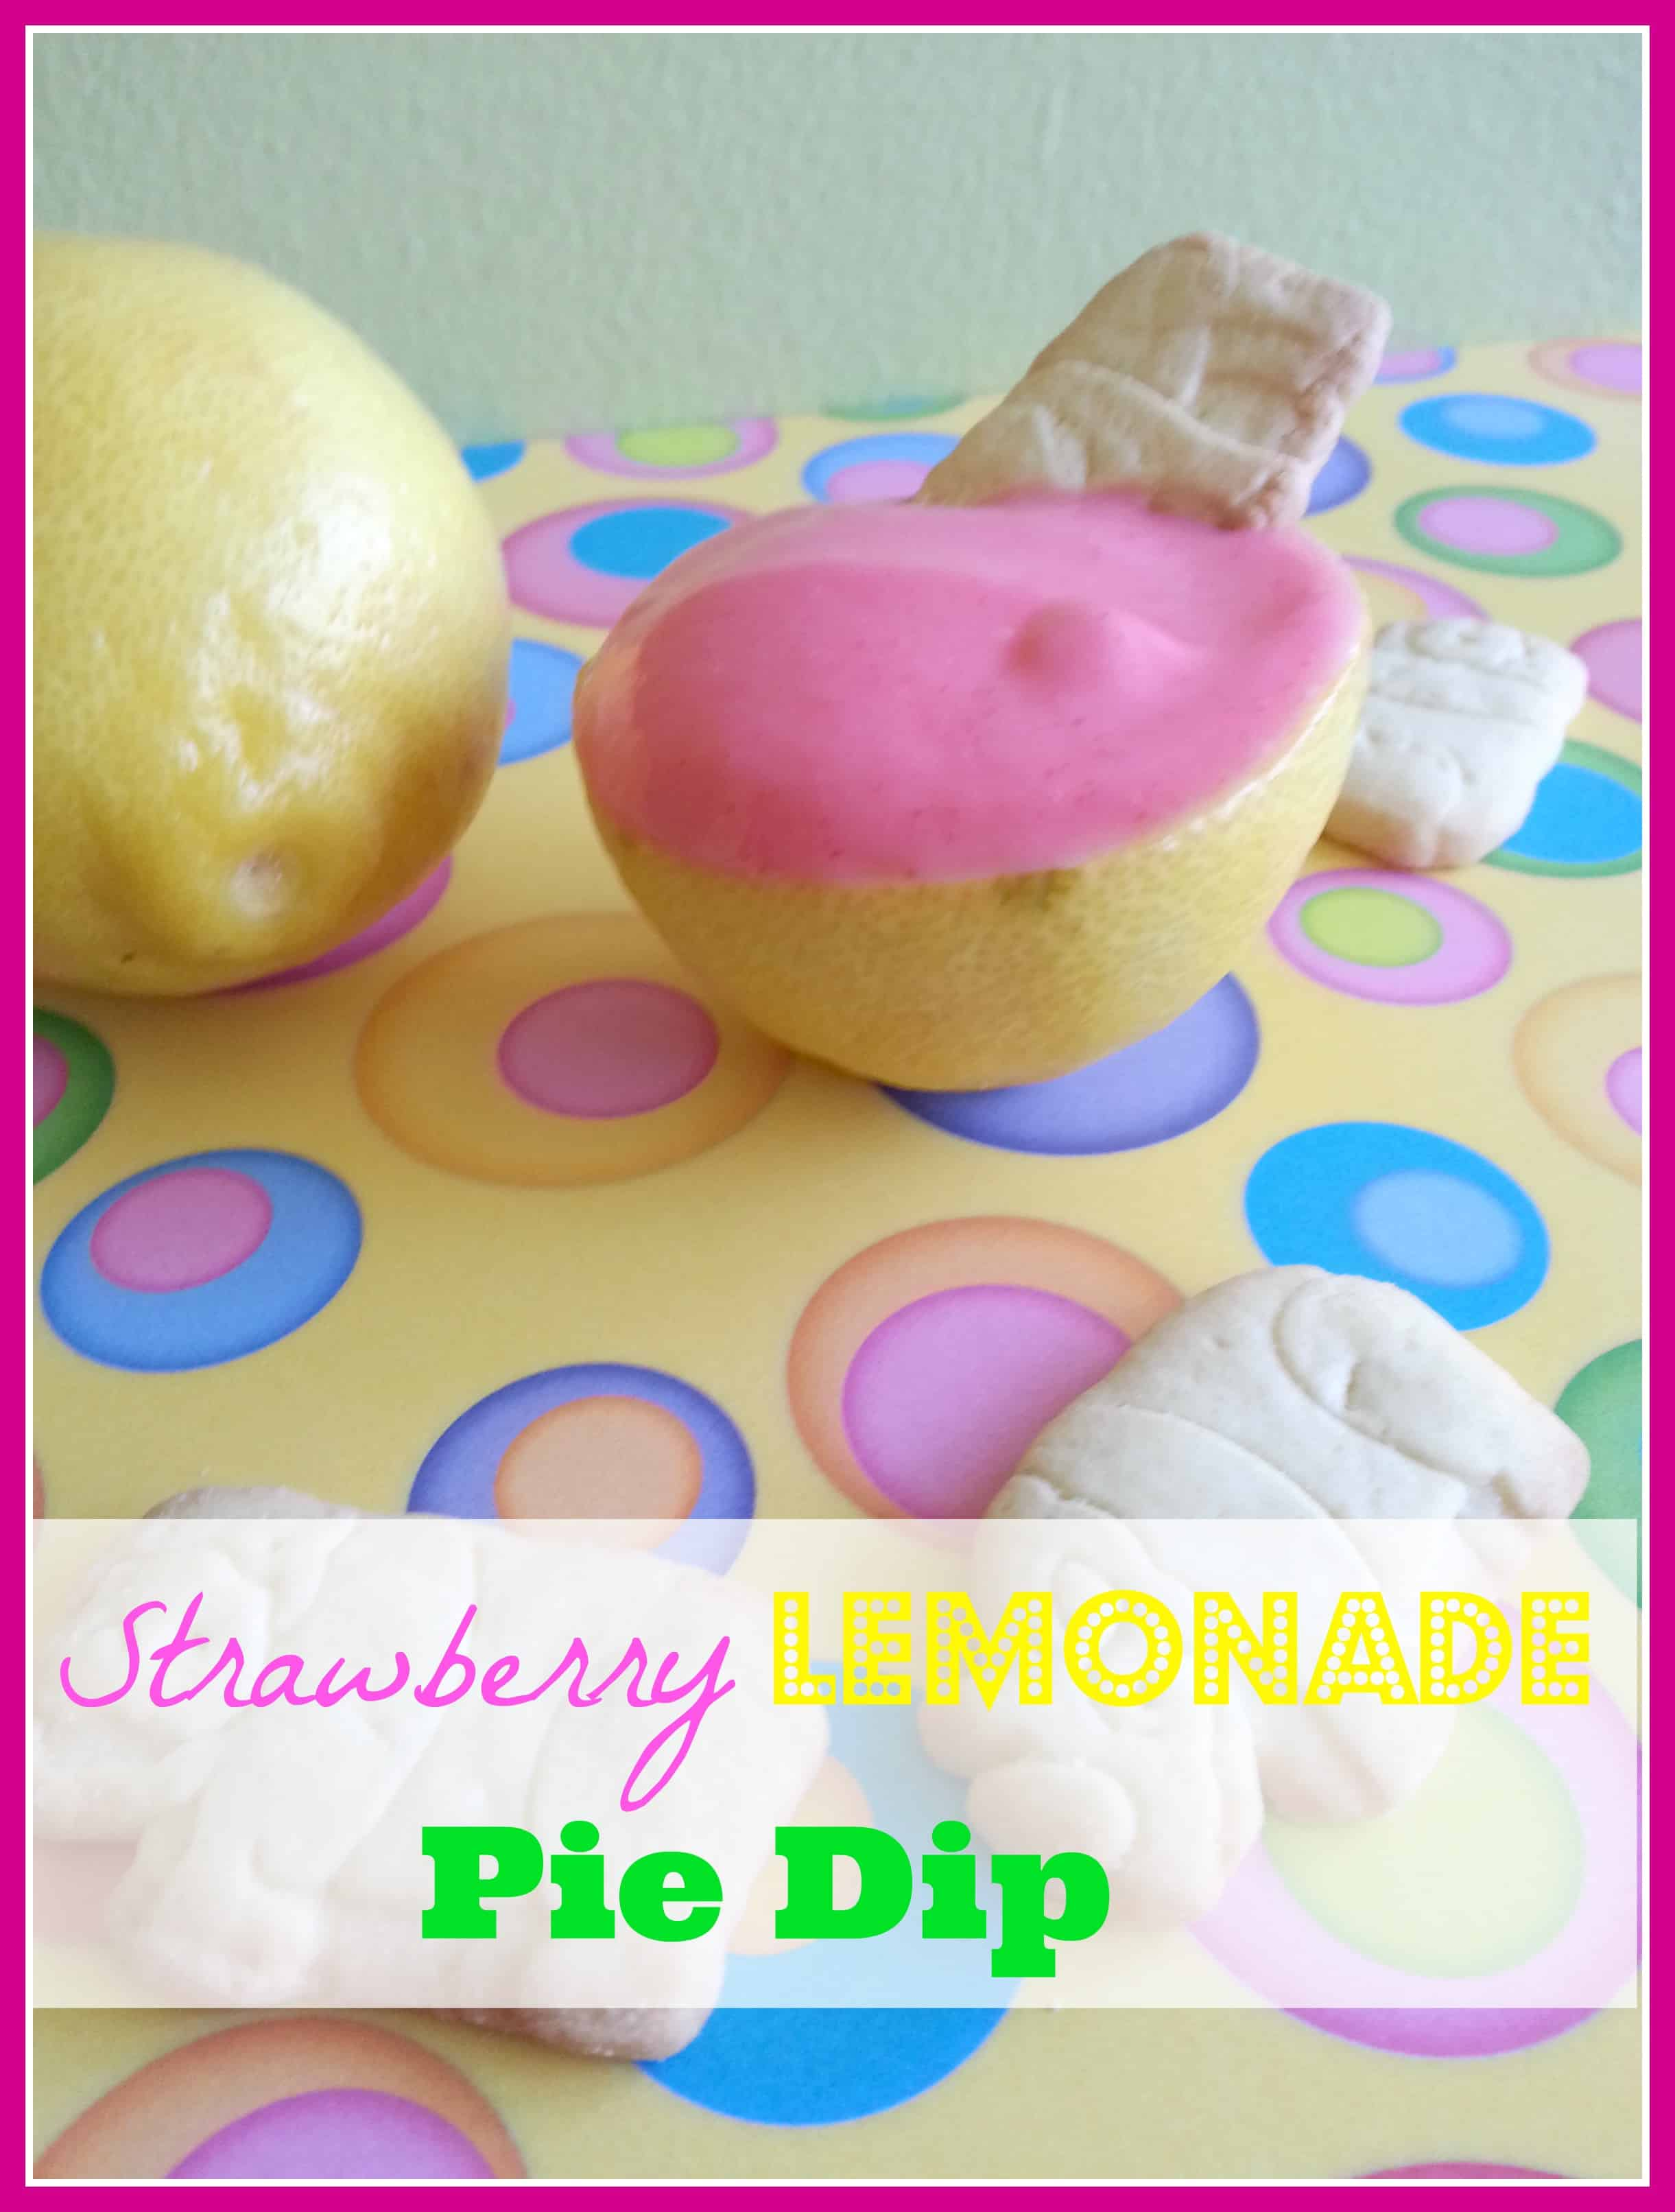 Strawberry Lemonade Pie Dip